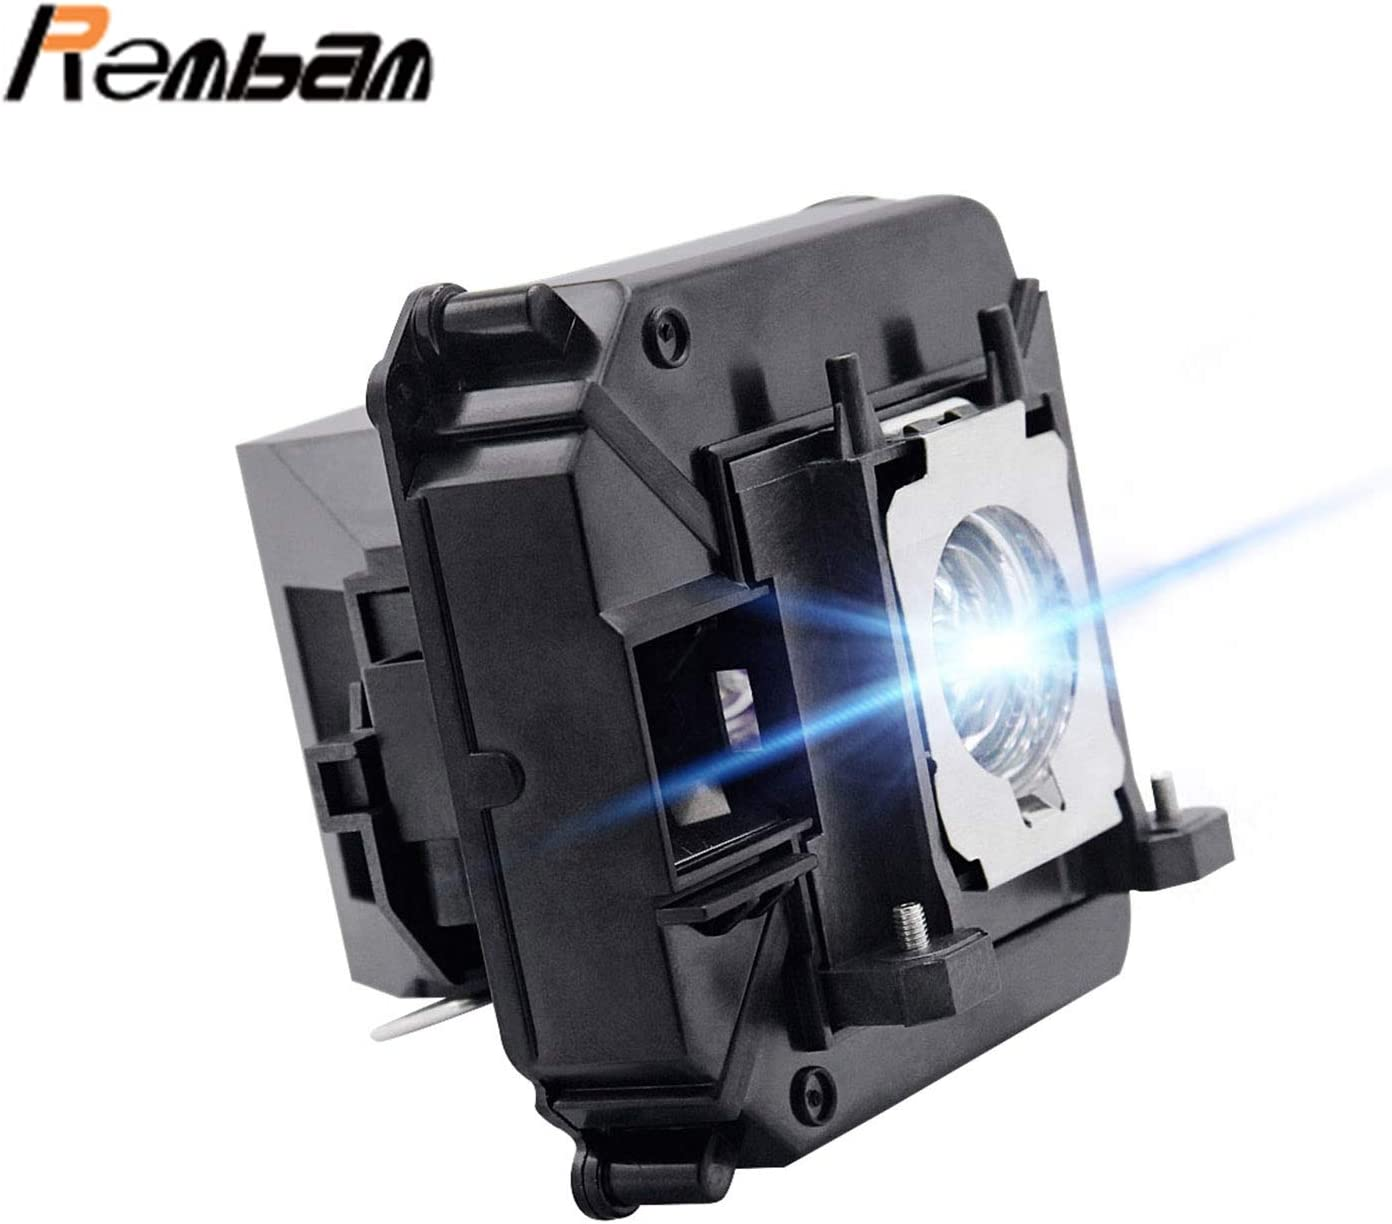 Rembam ELPLP68 V13H010L68 Projector Replacement Compatible Lamp with Housing for Epson EH-TW5900 EH-TW6000 EH-TW6000W HC3010 Powerlite HC 3010 3010E 3020UBE EH-TW5910 EH-TW6100 H421A H422A H450A